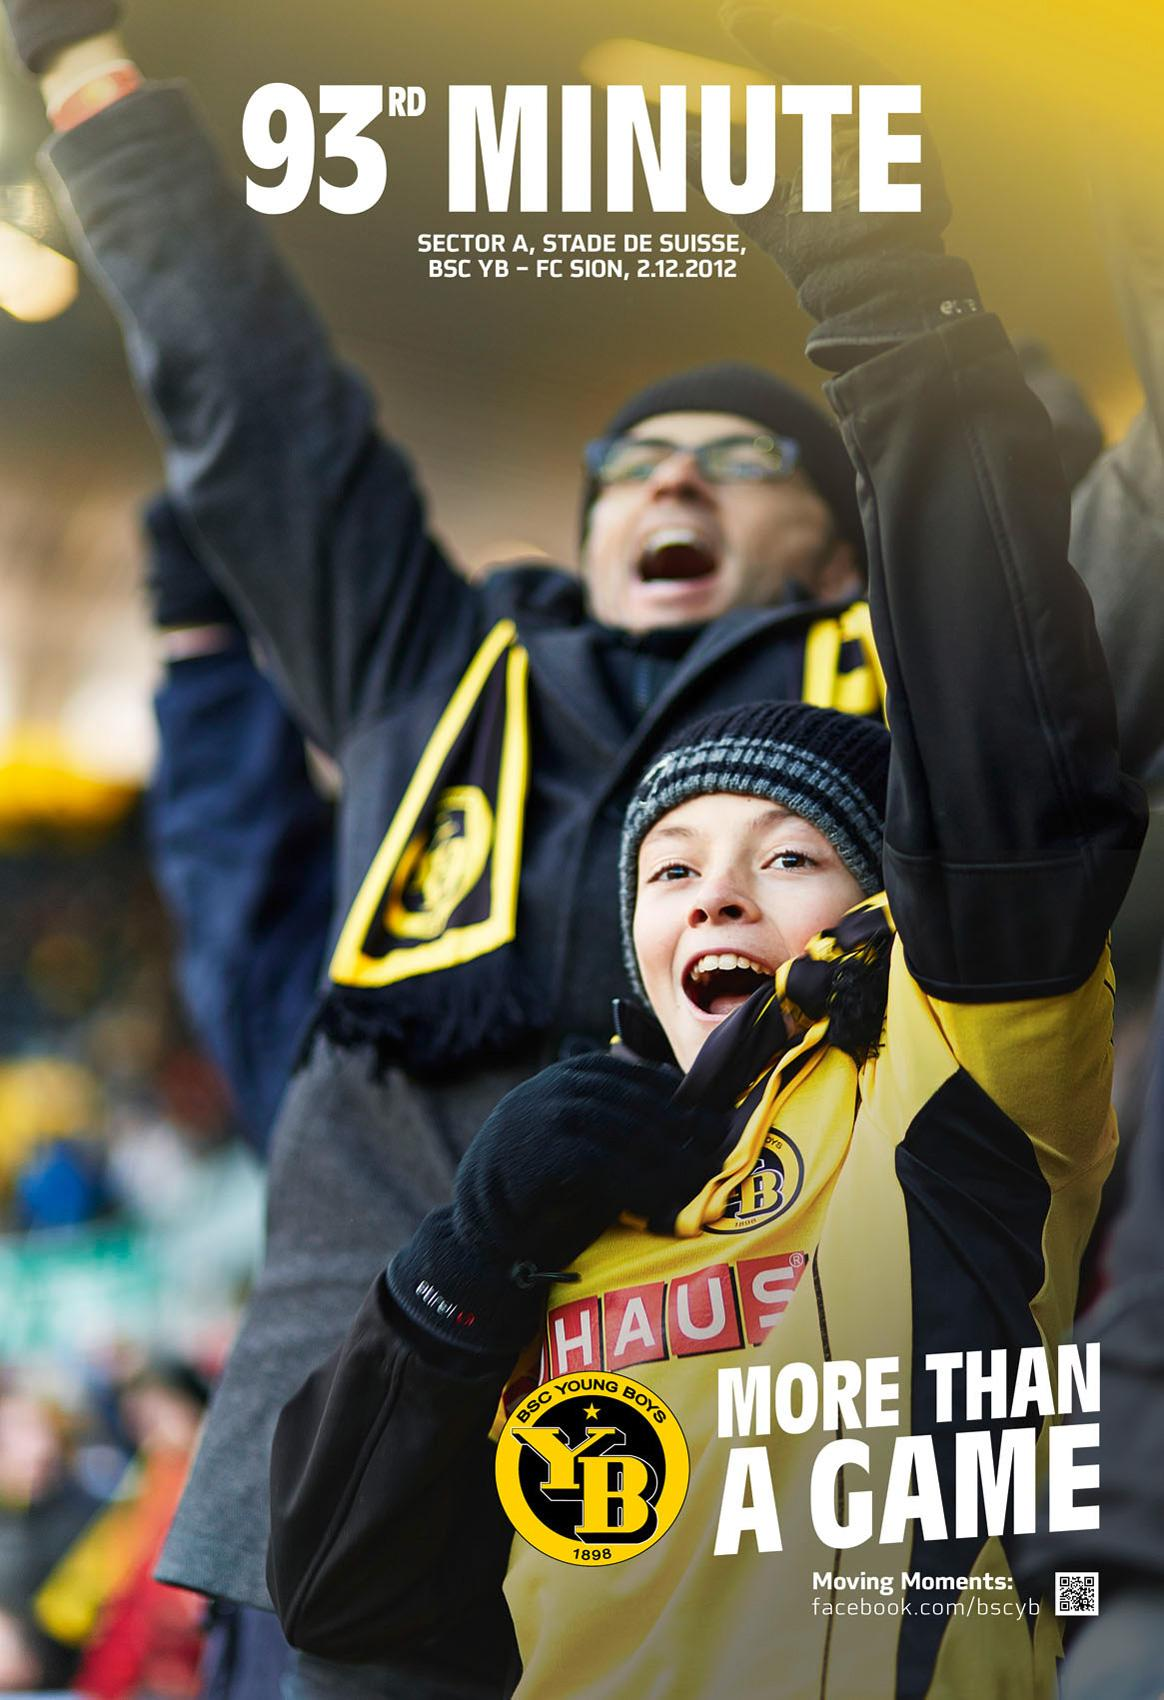 BSC Young Boys Print Ad -  More than a game, 2